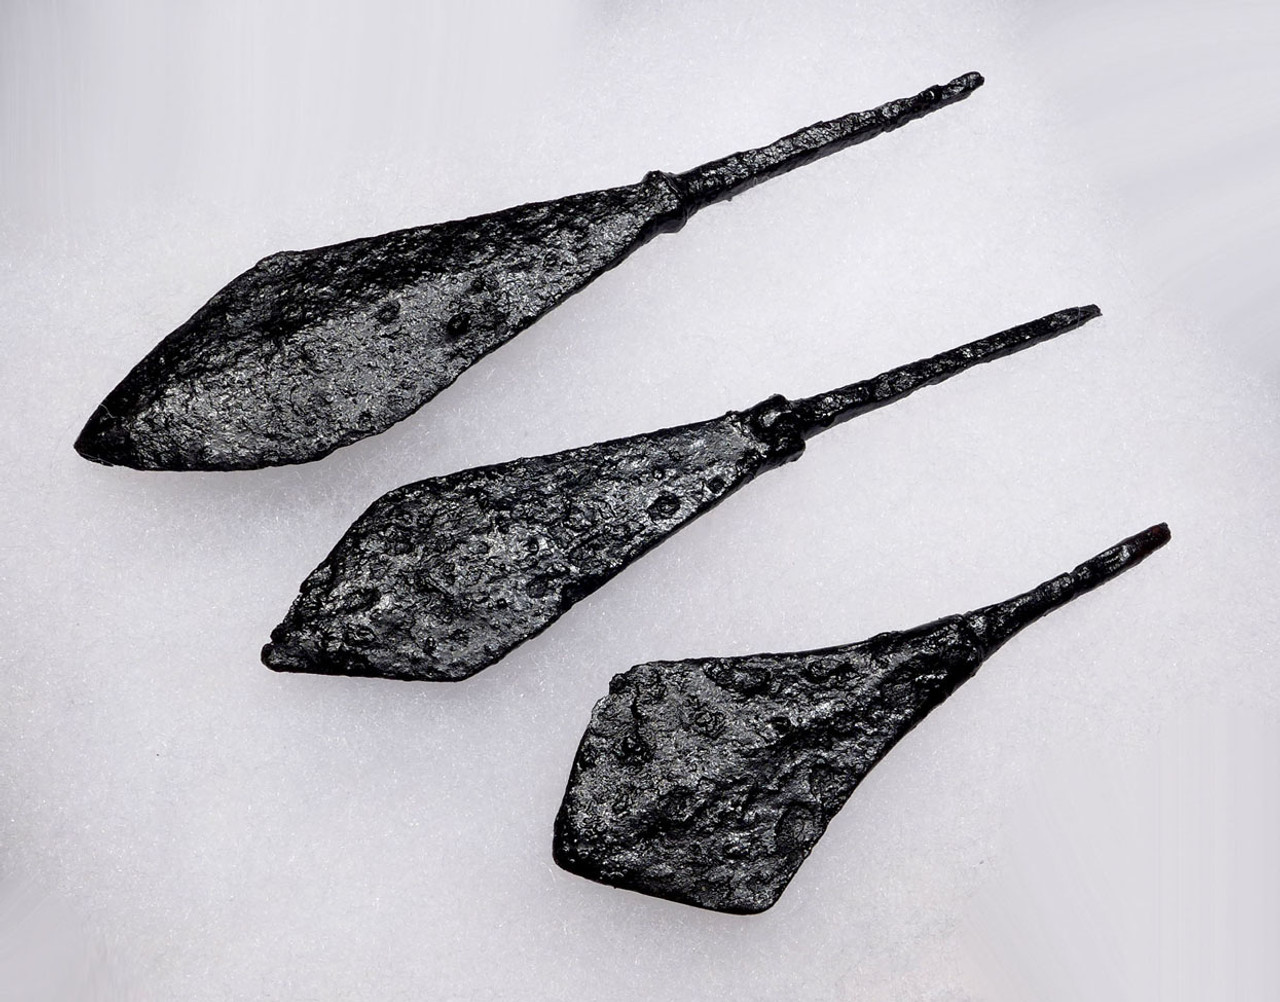 EXCELLENT SET OF 3 ANCIENT ROMAN IRON ARROWHEADS FROM THE BYZANTINE ERA *R177